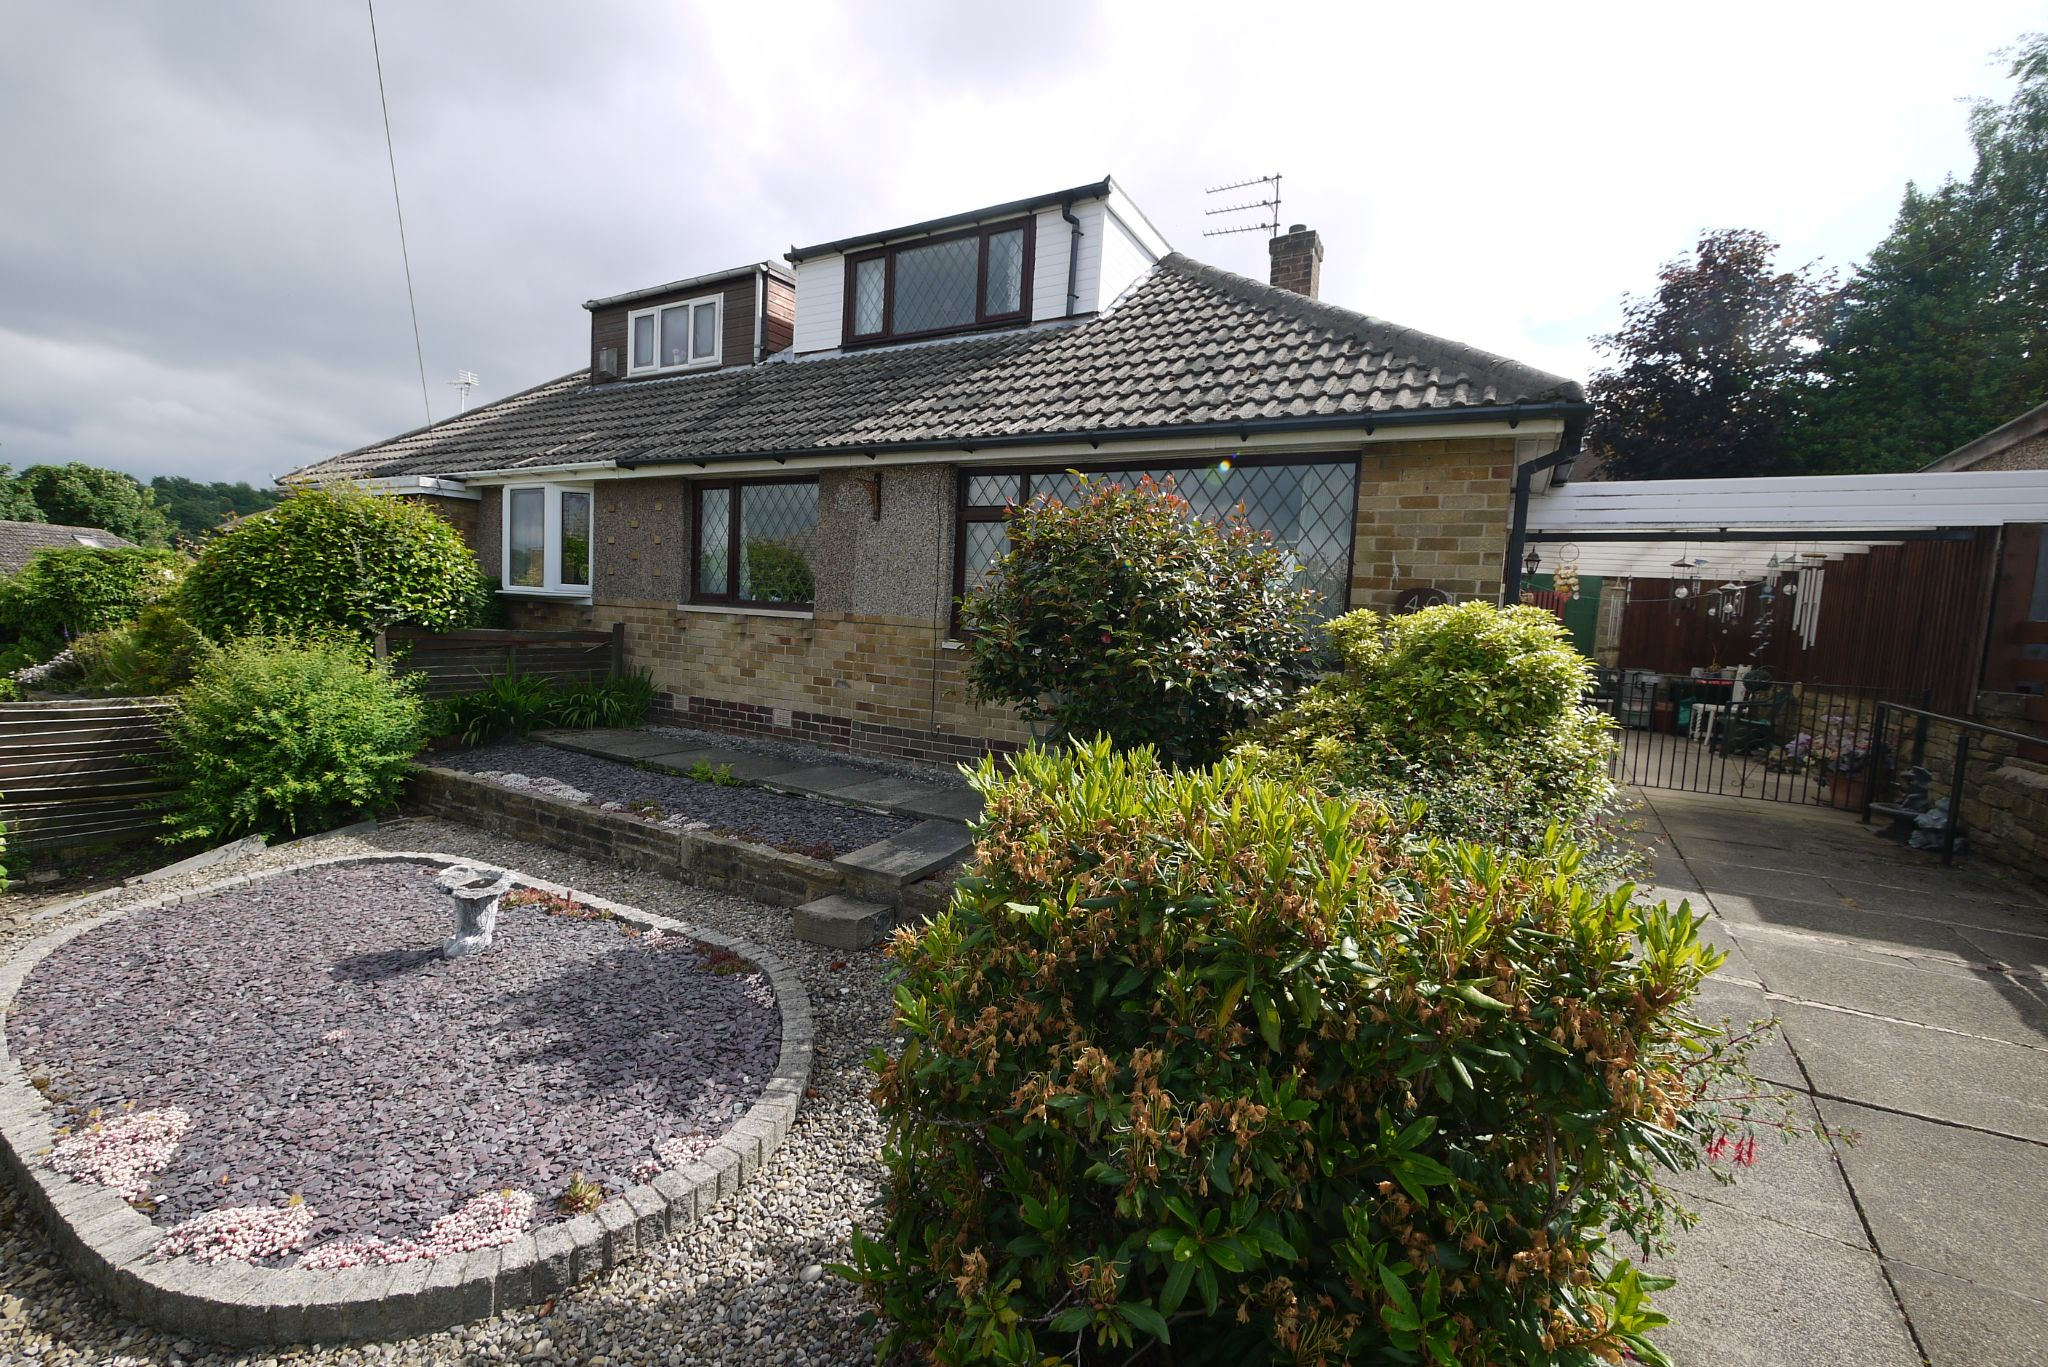 3 bedroom semi-detached bungalow SSTC in Brighouse - Photograph 1.